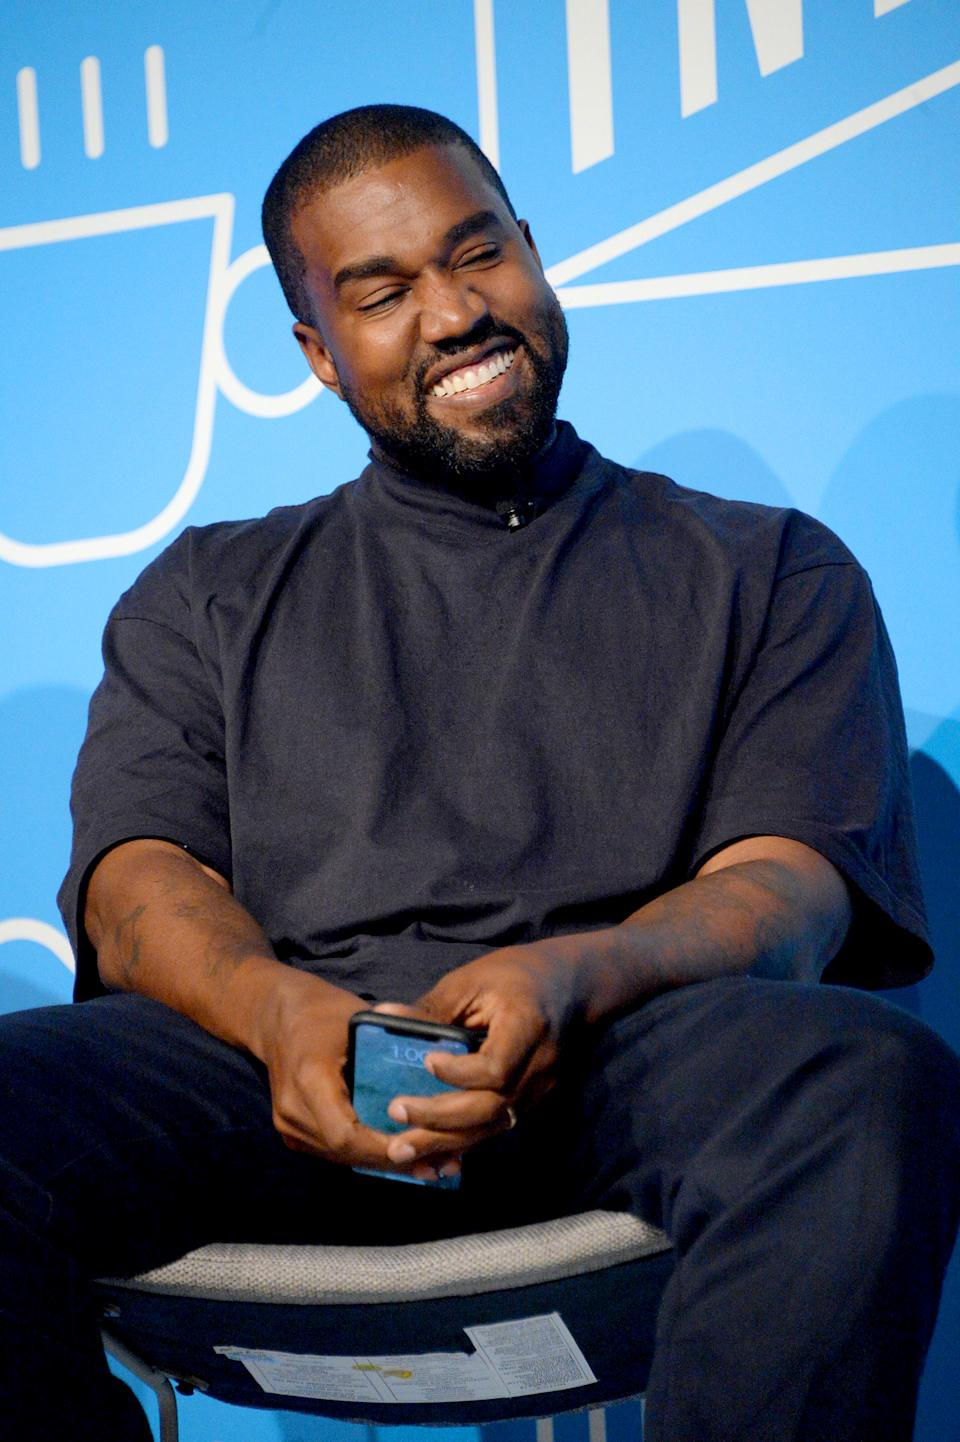 """Kanye West called himself the """"greatest artist that God ever created."""" (Photo: Brad Barket/Getty Images for Fast Company)"""